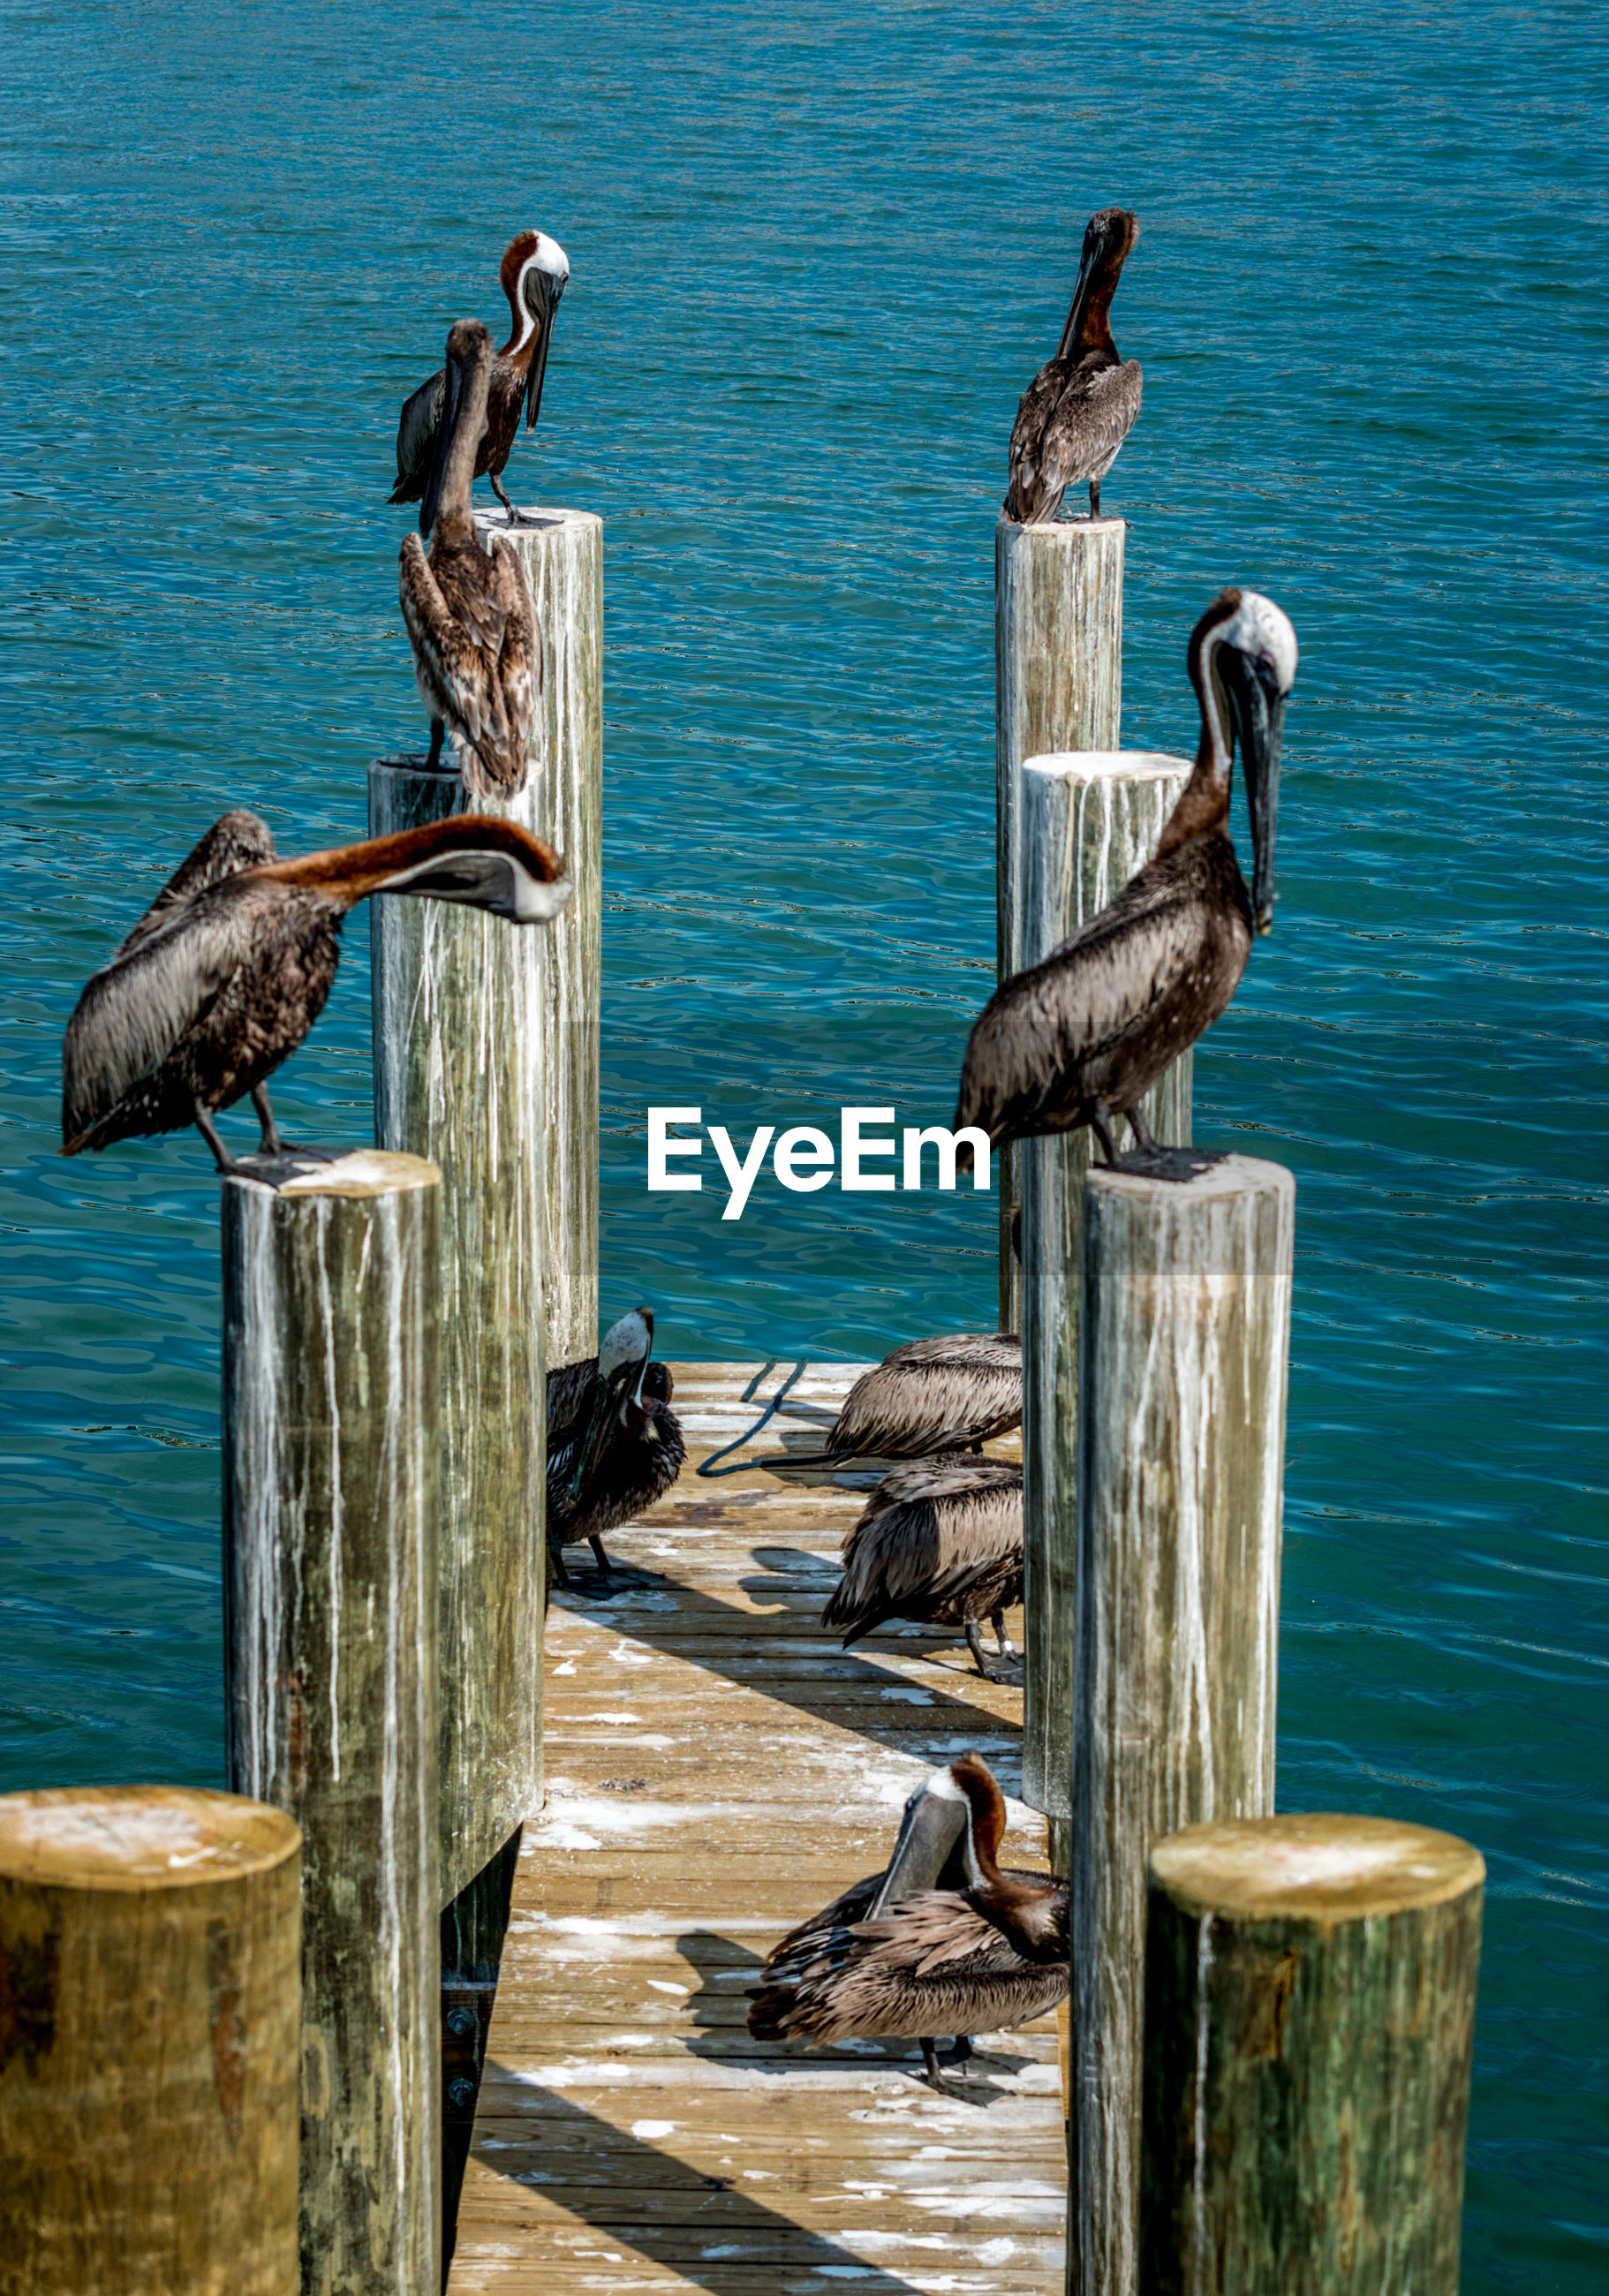 Pelicans perching on wooden post attached to pier over sea